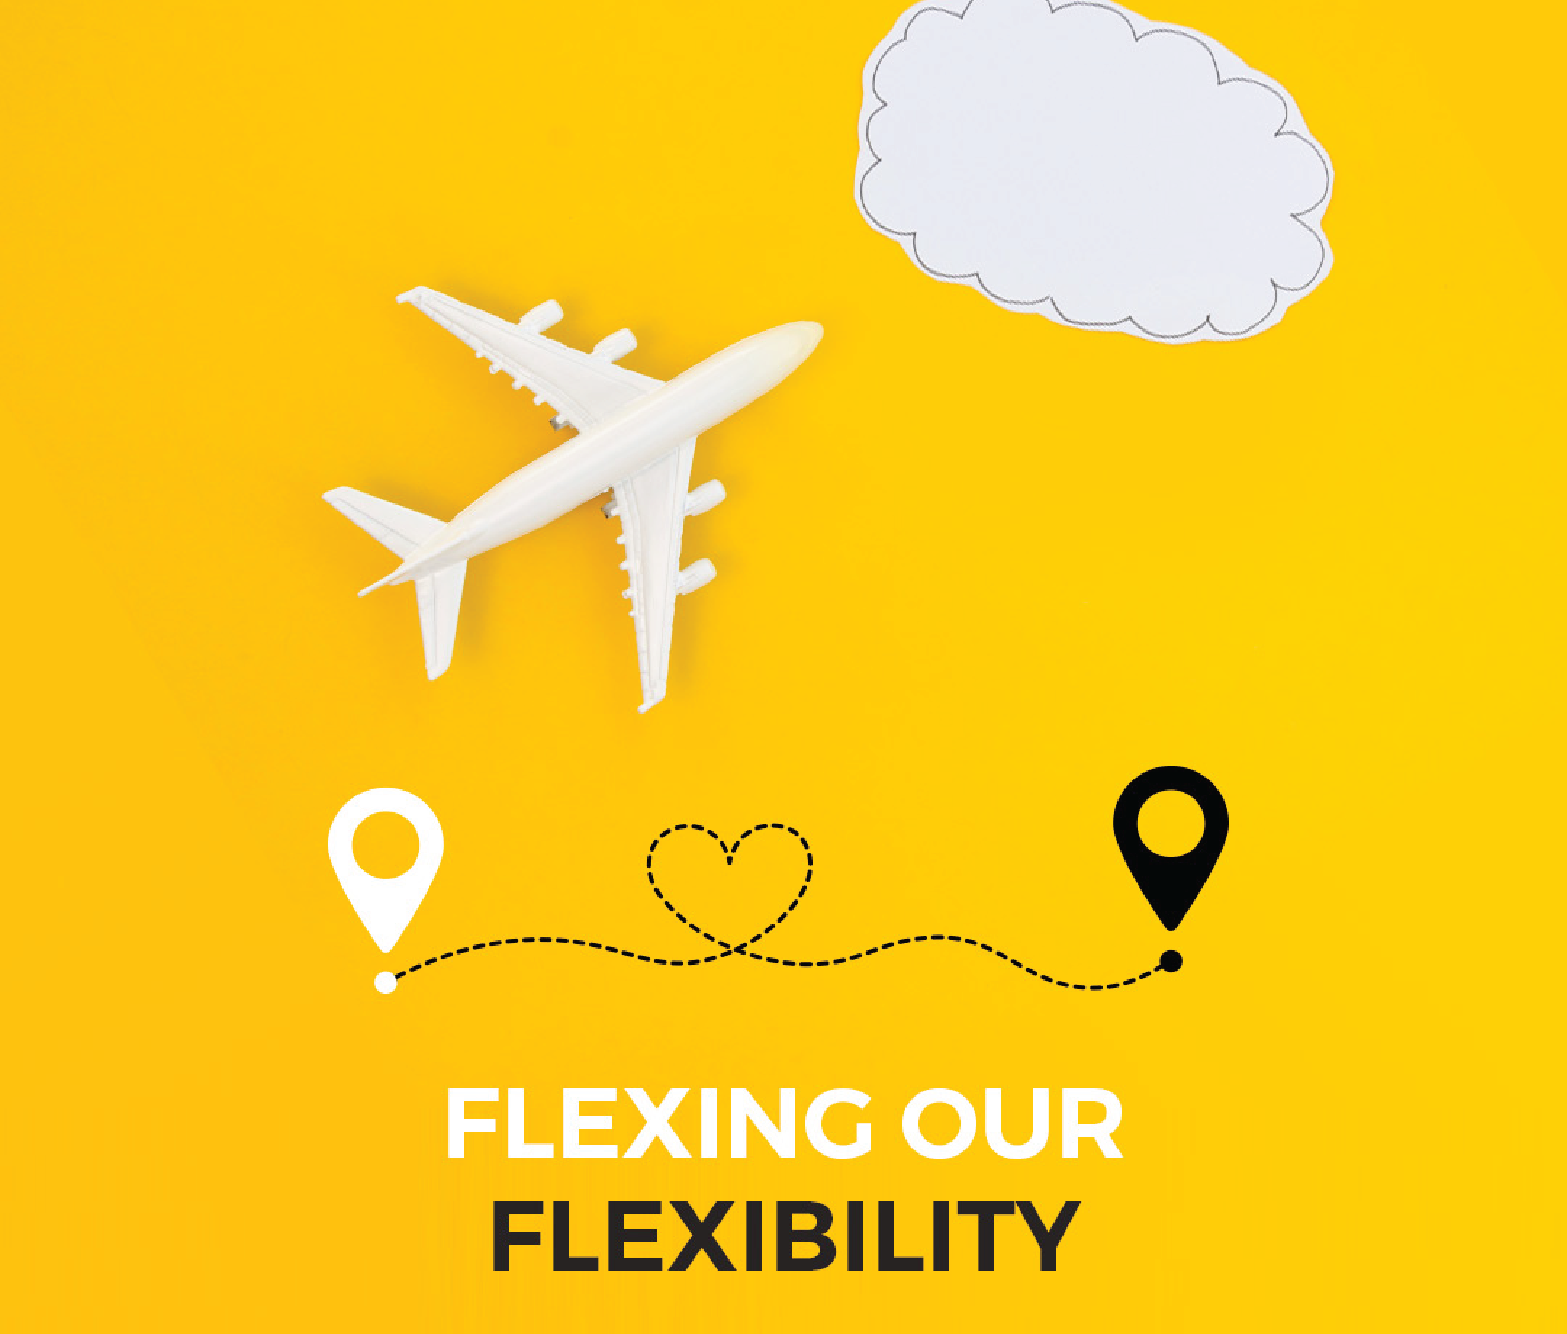 Lessons learnt from the COVID-19 classroom 101. The anticipated POST COVID travel trend is here and now, and it's all about ease, accessibility, agility and most importantly flexibility.